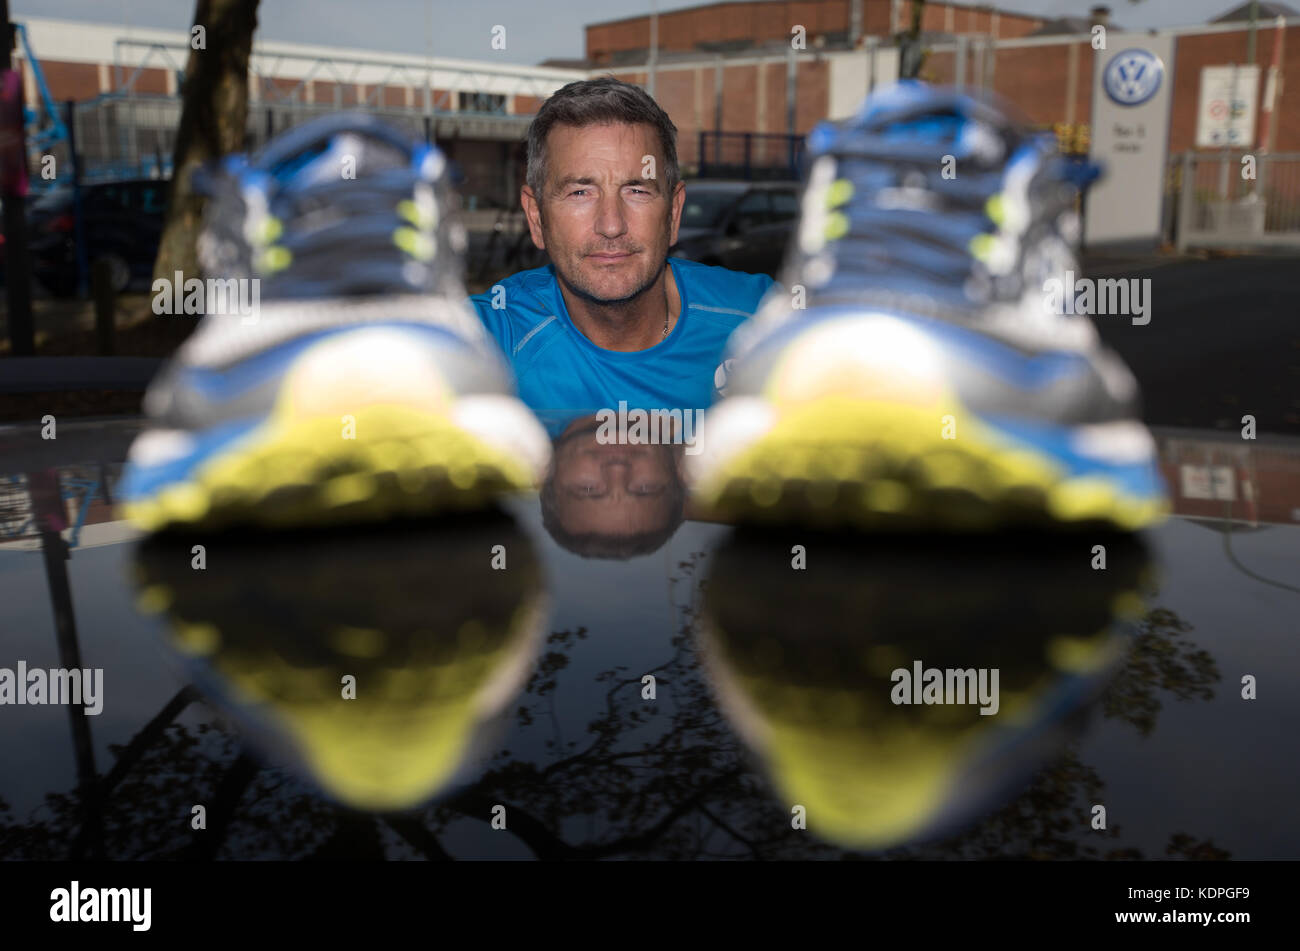 Scottish long-distance runner John McGurk poses with his shoes at a Volkswagen production site in Osnabrueck, Germany, - Stock Image